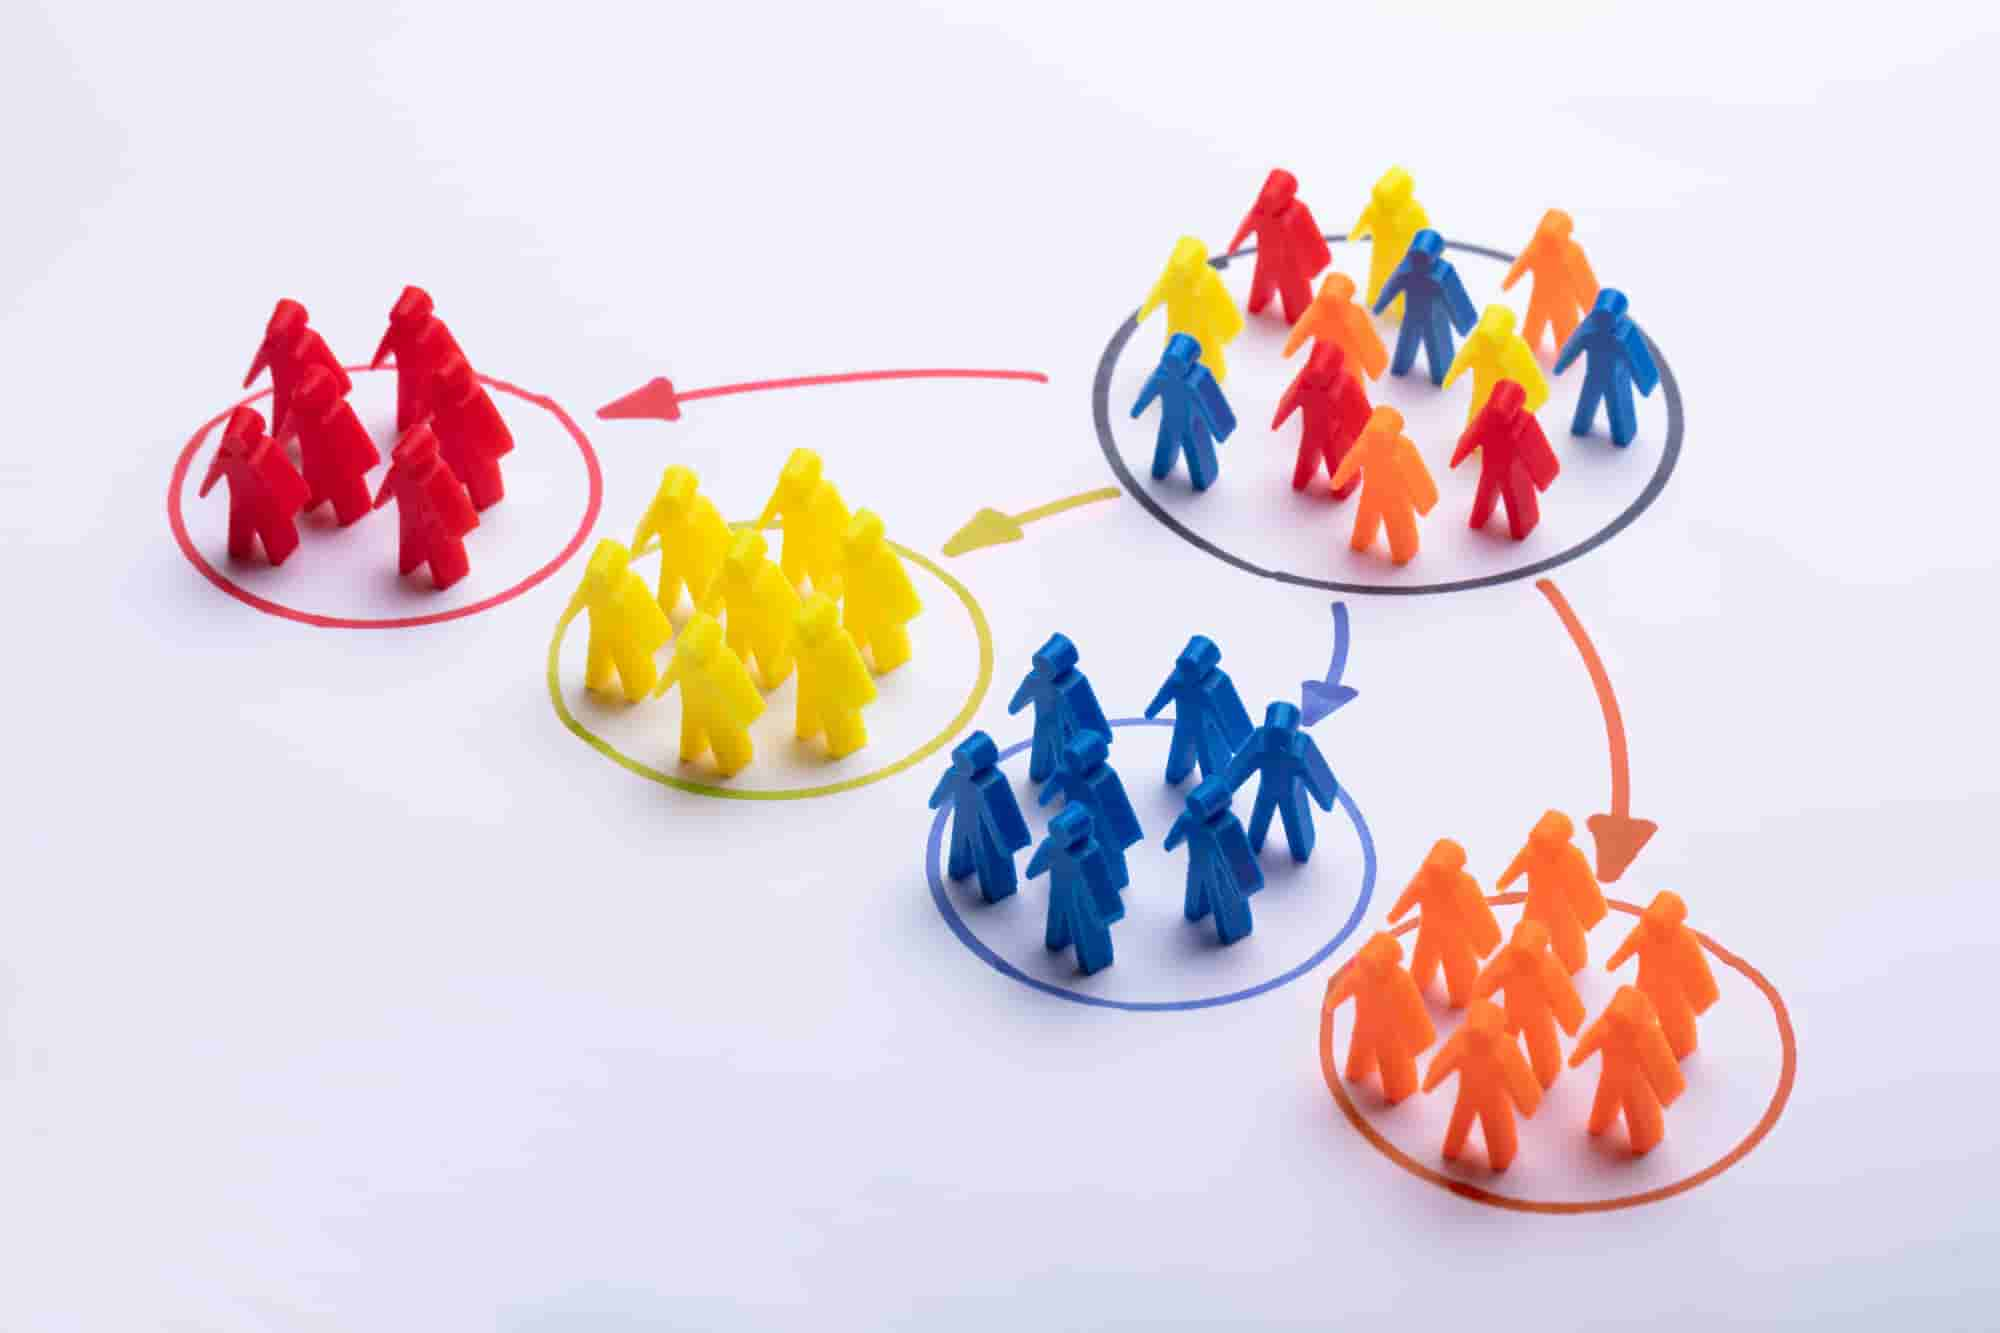 A large group being divided into smaller groups based on shared characteristics